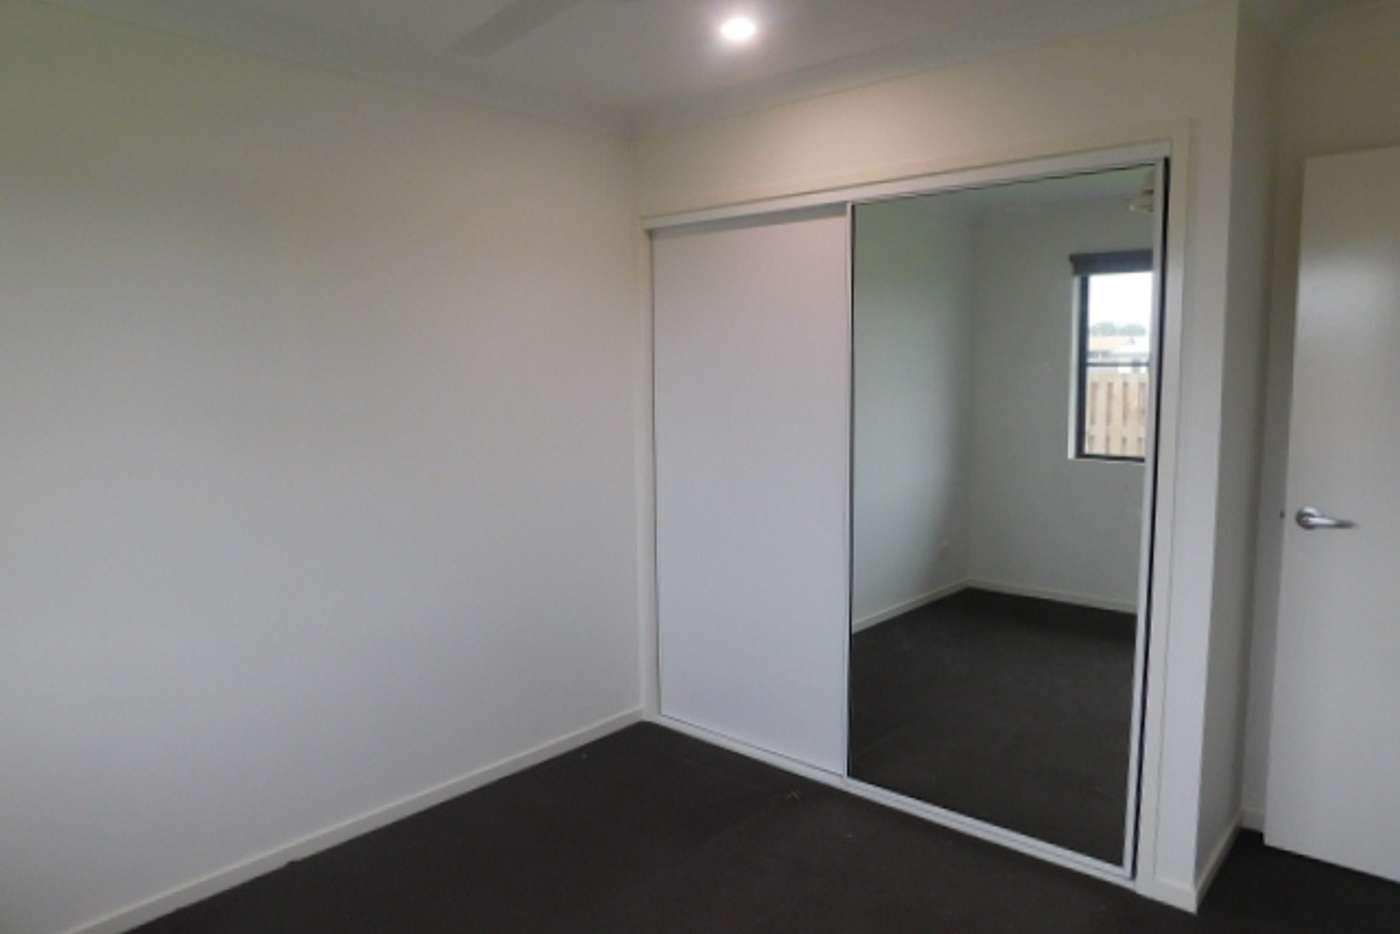 Sixth view of Homely house listing, 5 Hamilton Avenue, Bowen QLD 4805